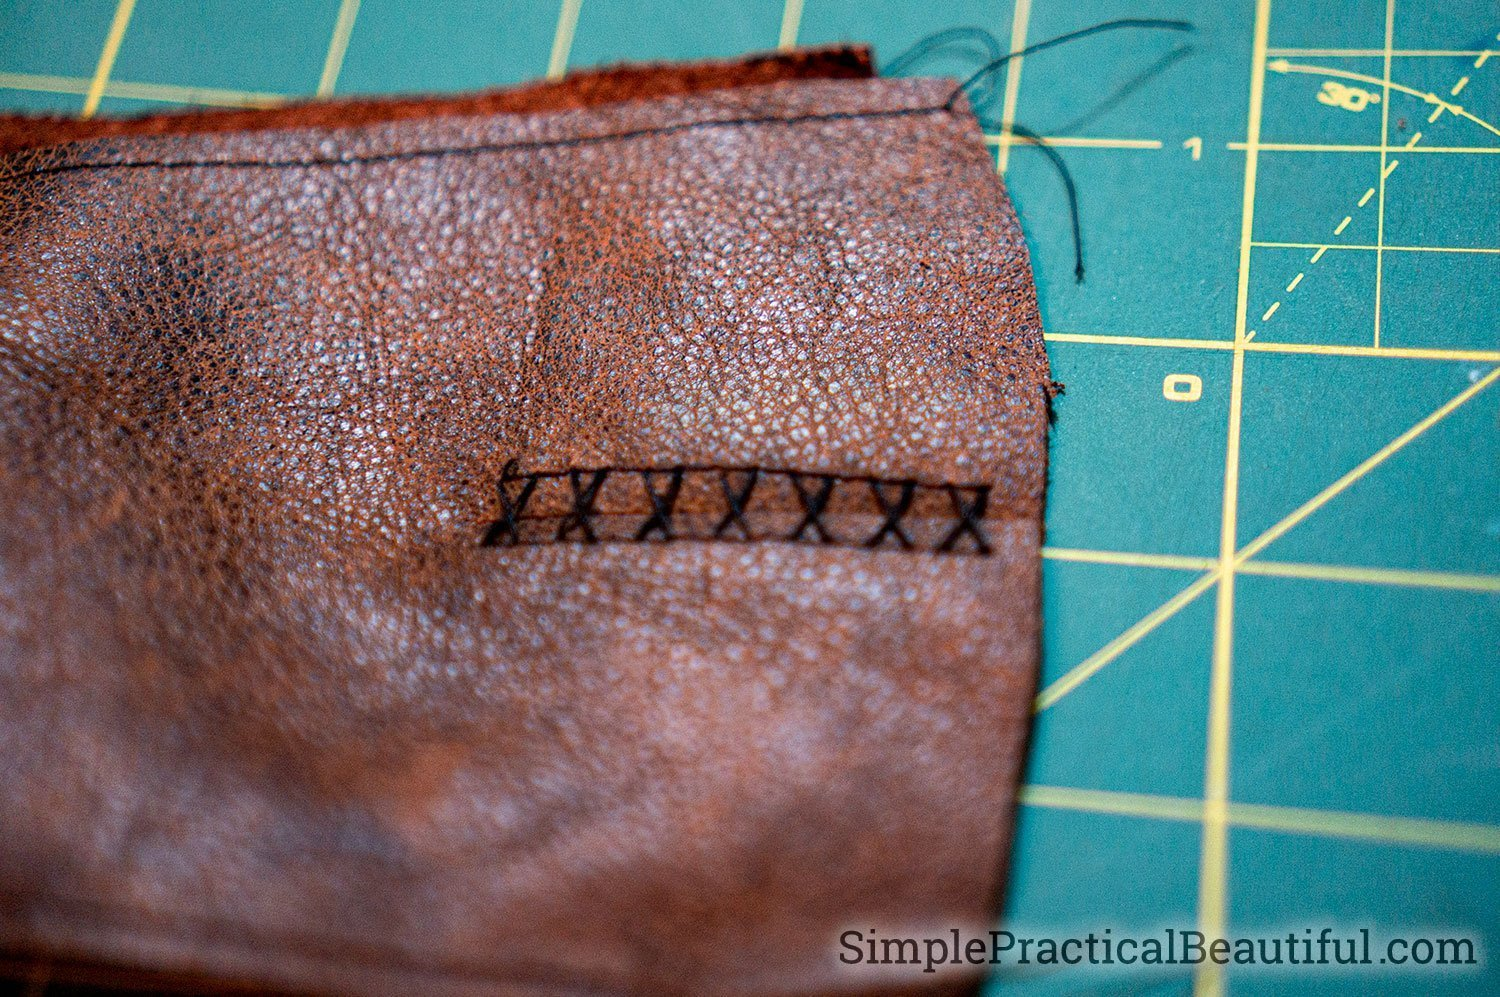 Sew the leather gloves together by hand using the holes from the machine stitch